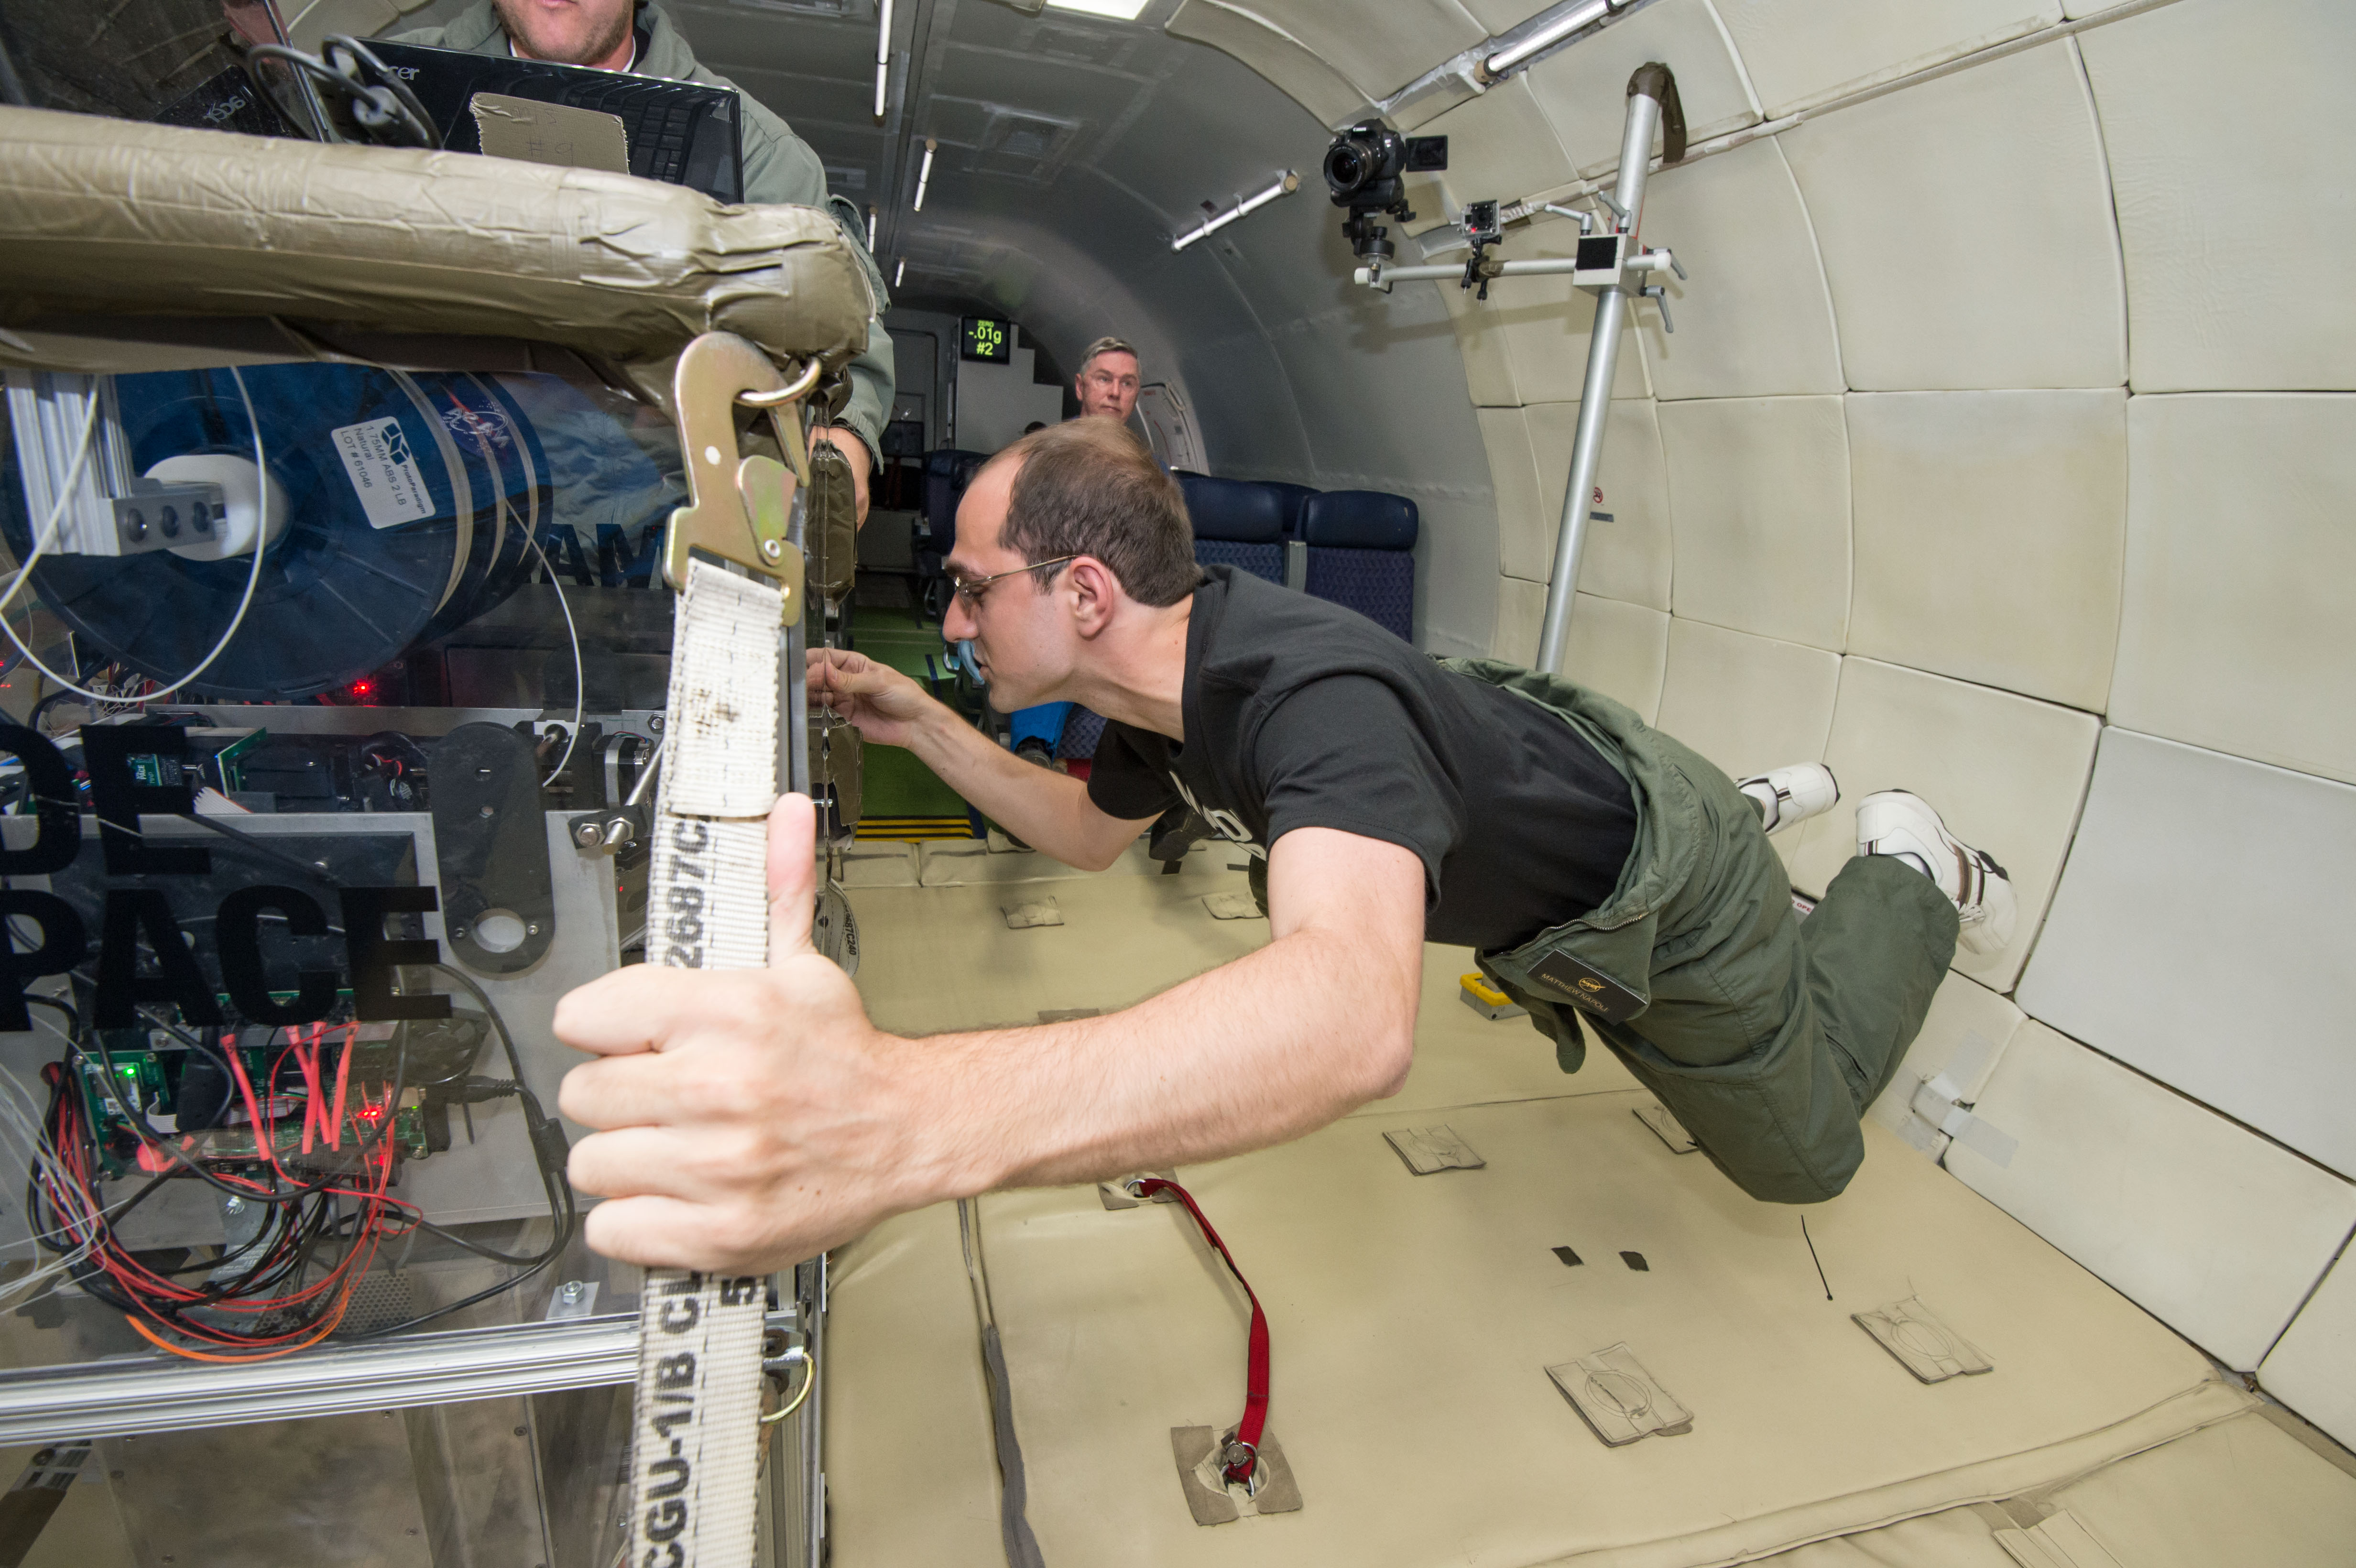 Engineers test the Made in Space printer on a Zero Gravity Corp. airplane. Credit: Made in Space